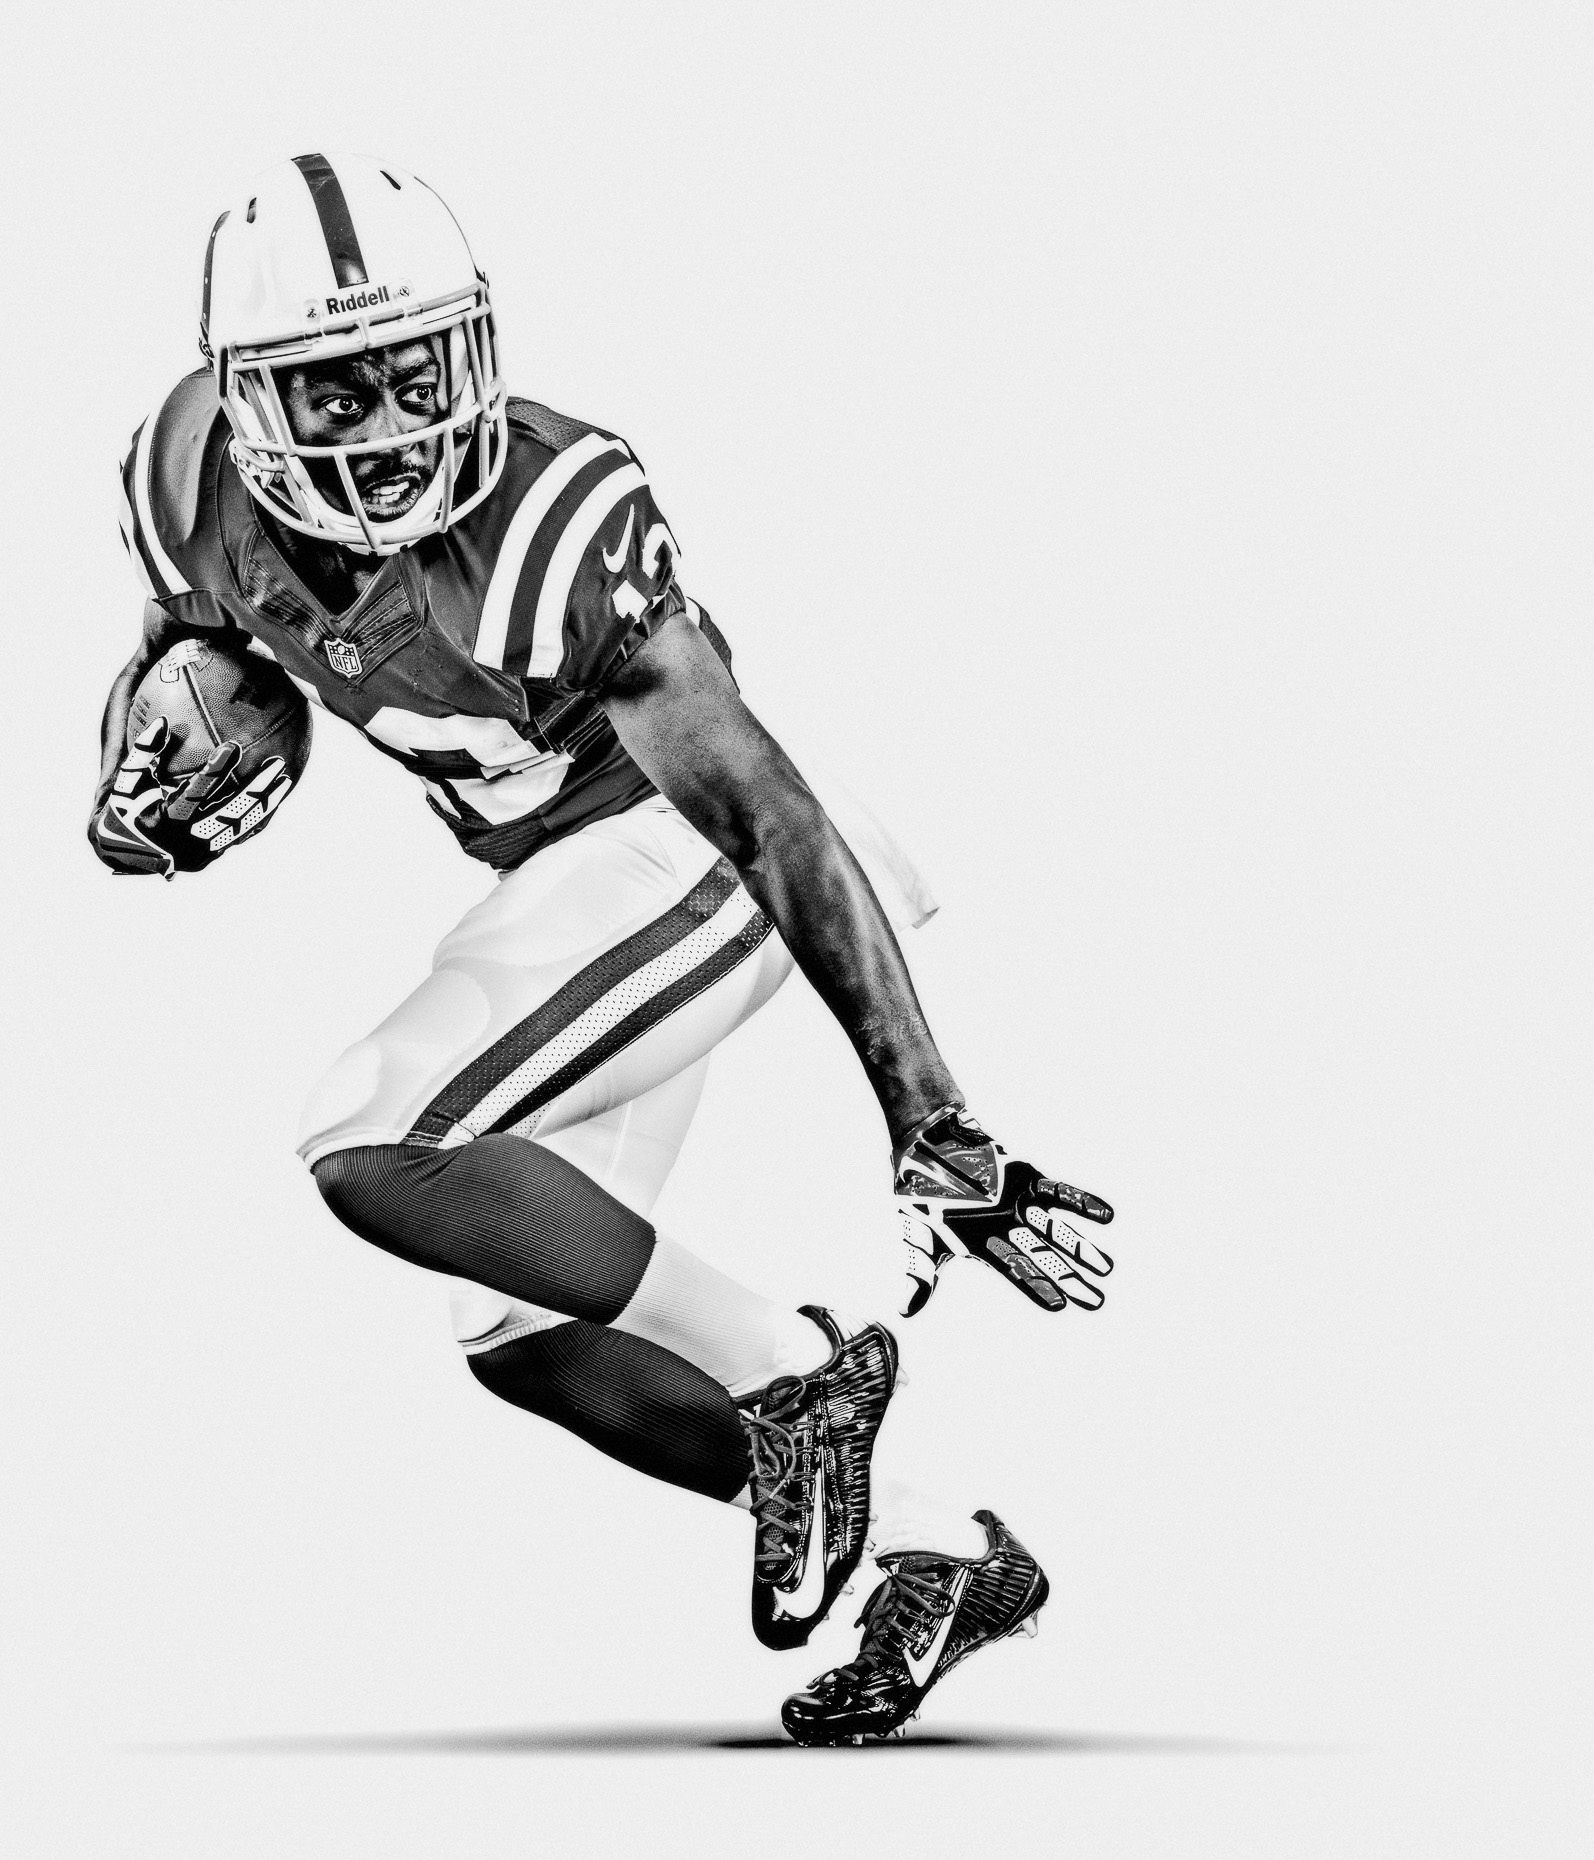 NFL Verizon Ty Hilton defends football for the Indianapolis Colts in a white studio b&w by Andy Batt